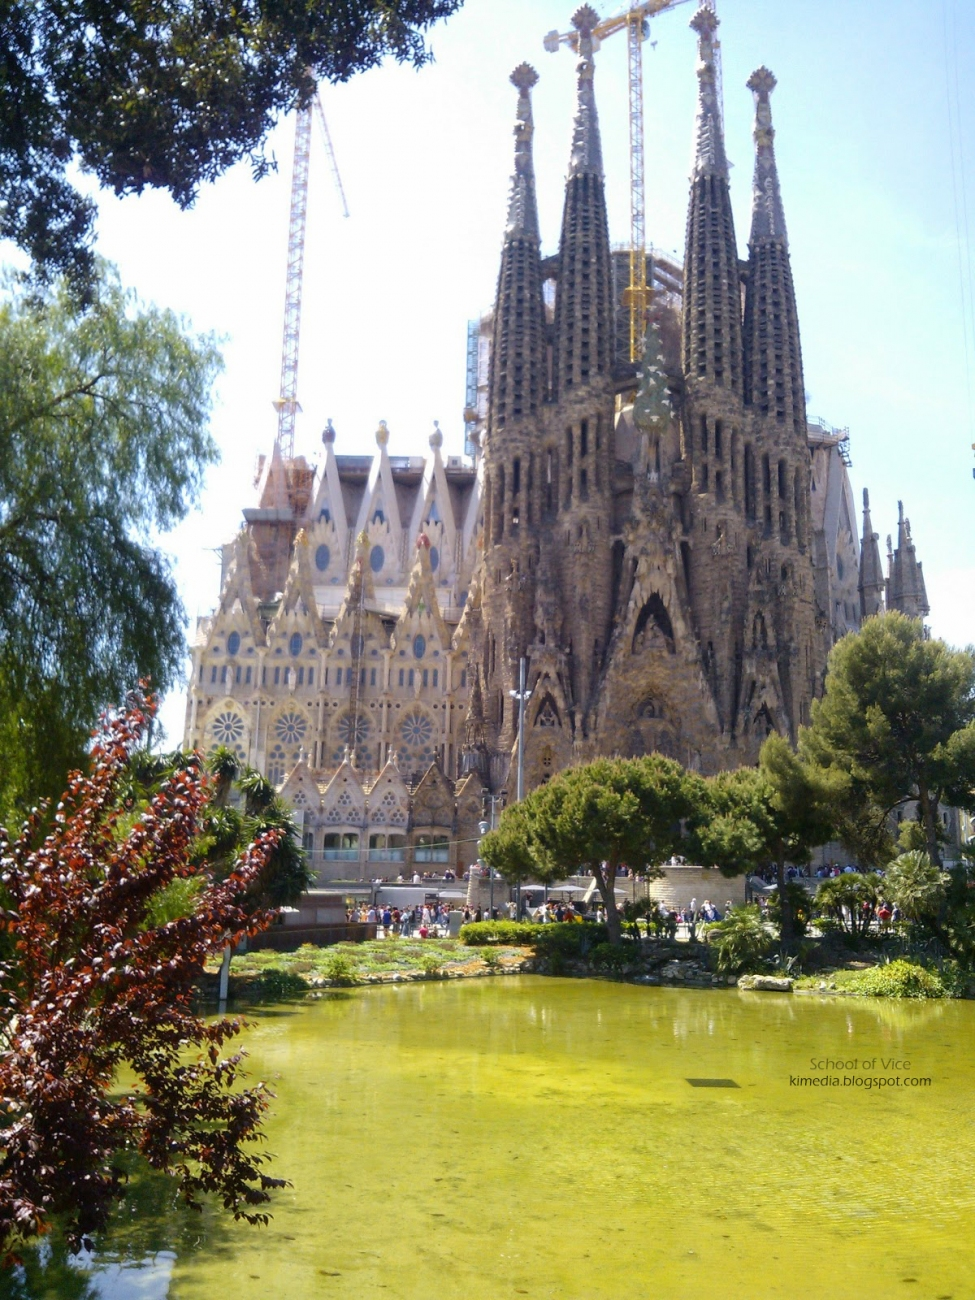 La Sagrada Familia - The first stone was laid 100 years ago and is still a work in progress. Photo credit: School of Vice/KI Media